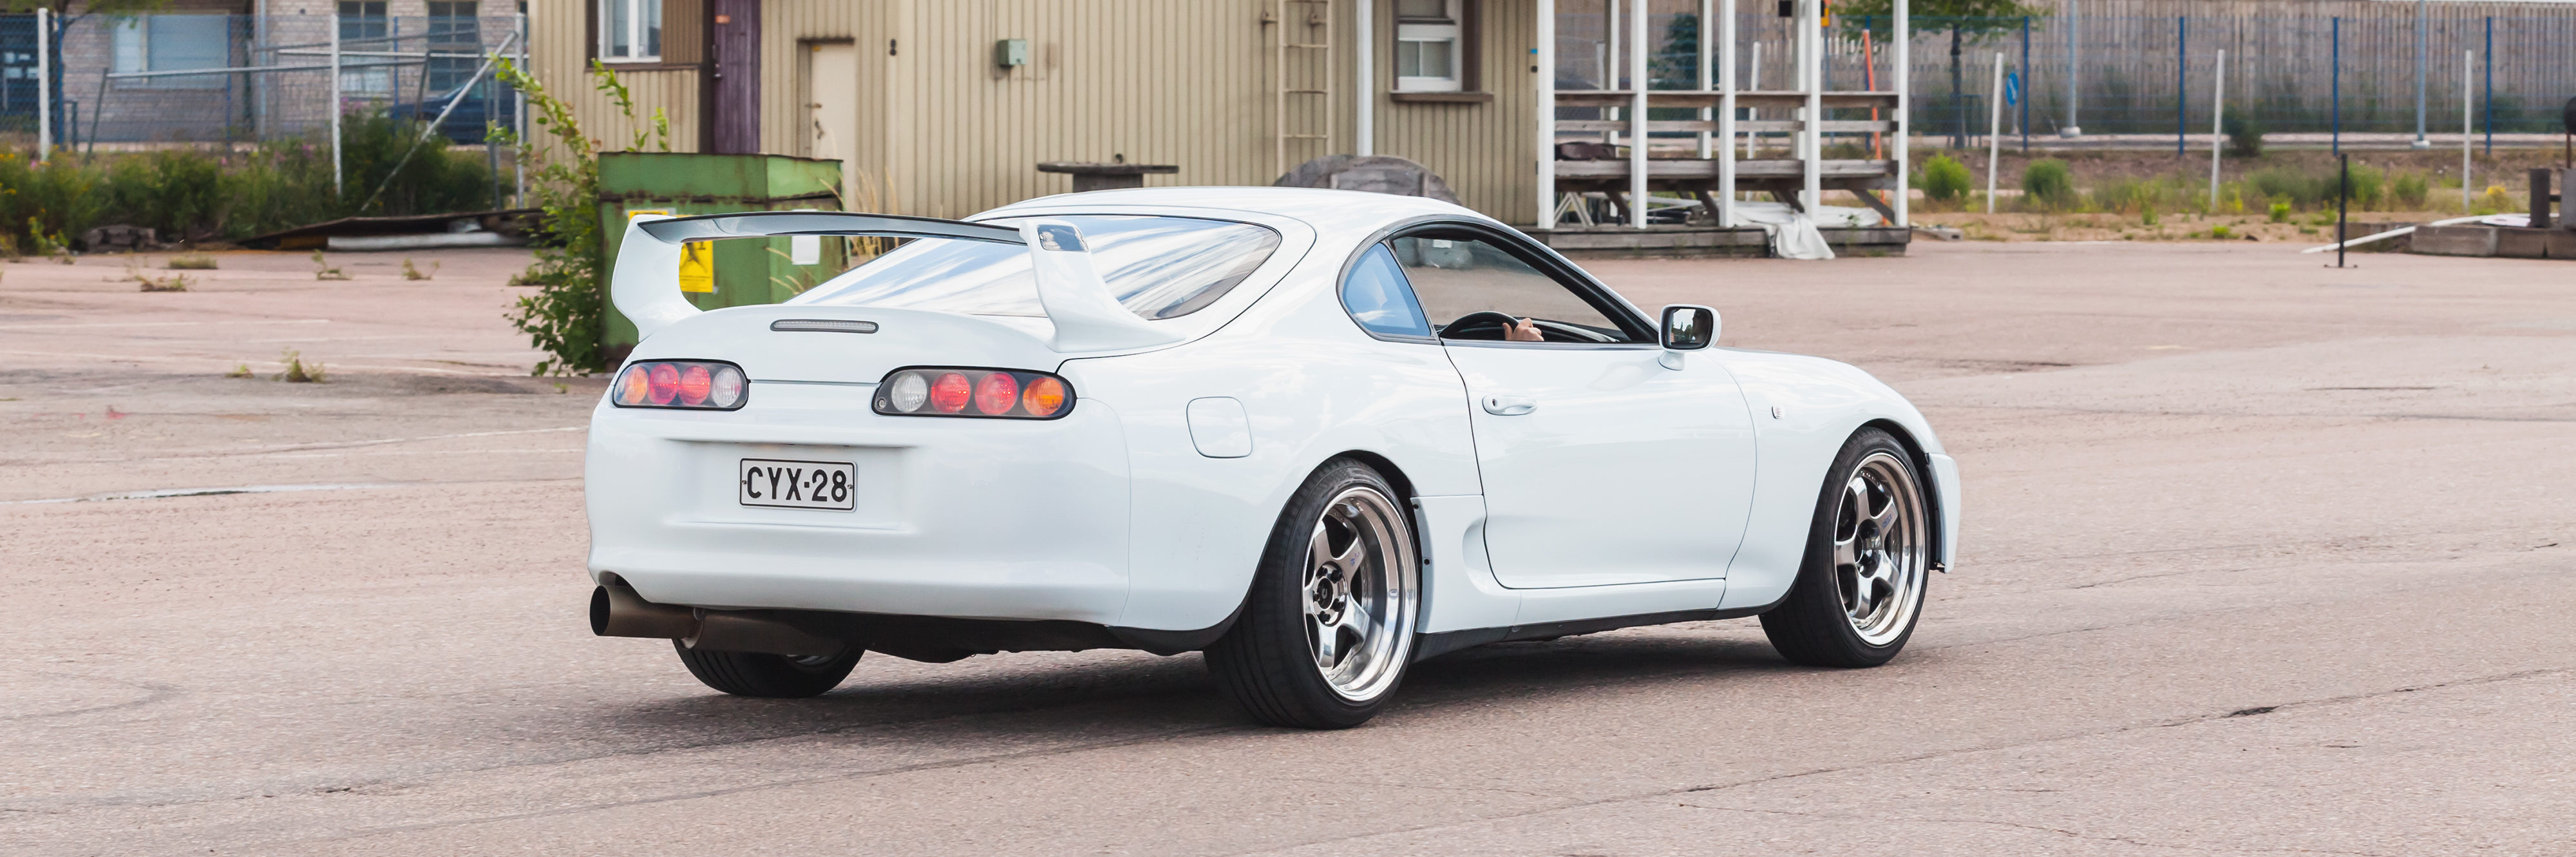 White Toyota Supra A80 goes down the street in European town